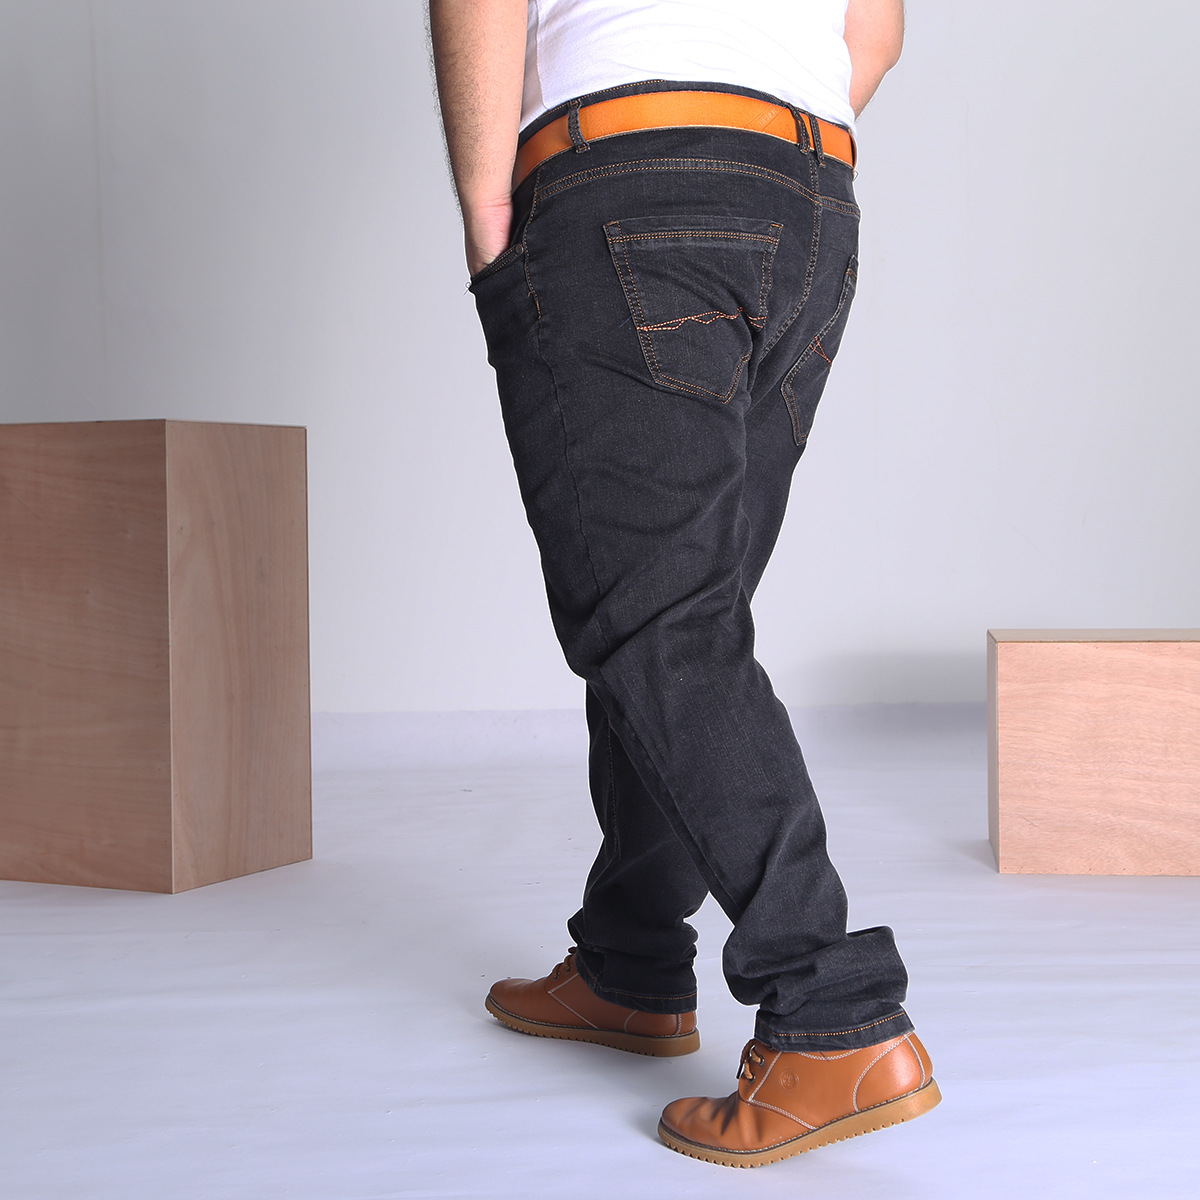 Xd14011 Autumn And Winter High-waisted Elasticity Plus-sized Jeans Men's Lard-bucket Loose And Plus-sized Fat Pants 36-52